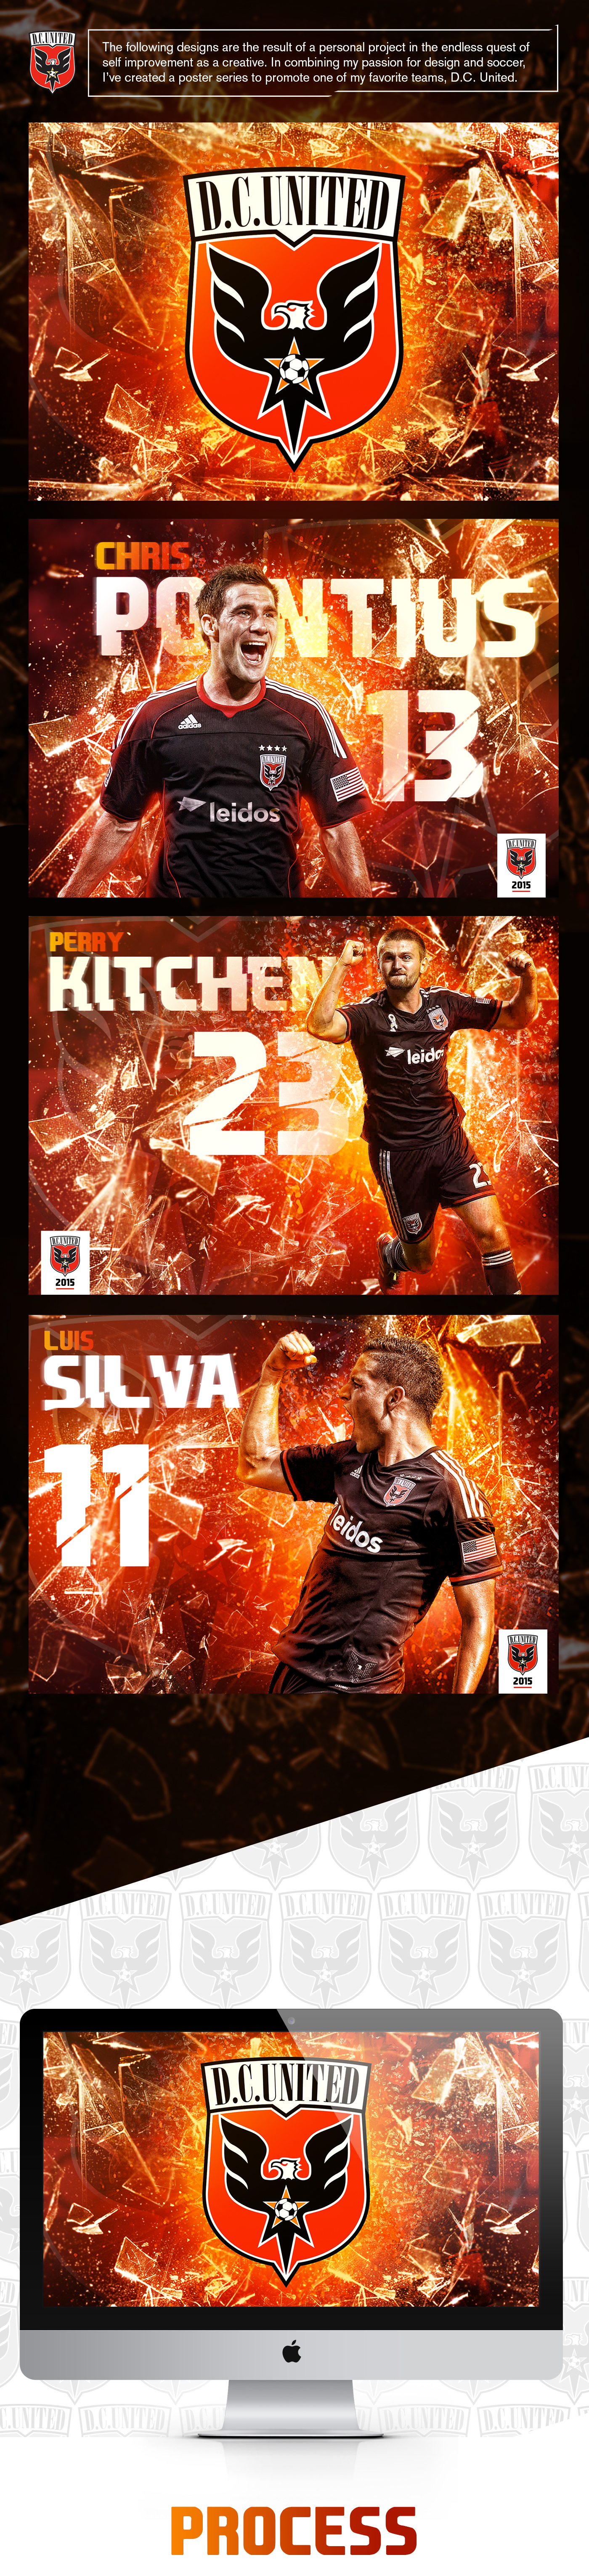 photoshop,topaz labs,soccer,sports,design,D.C. United,mls,poster,series,Photo effect